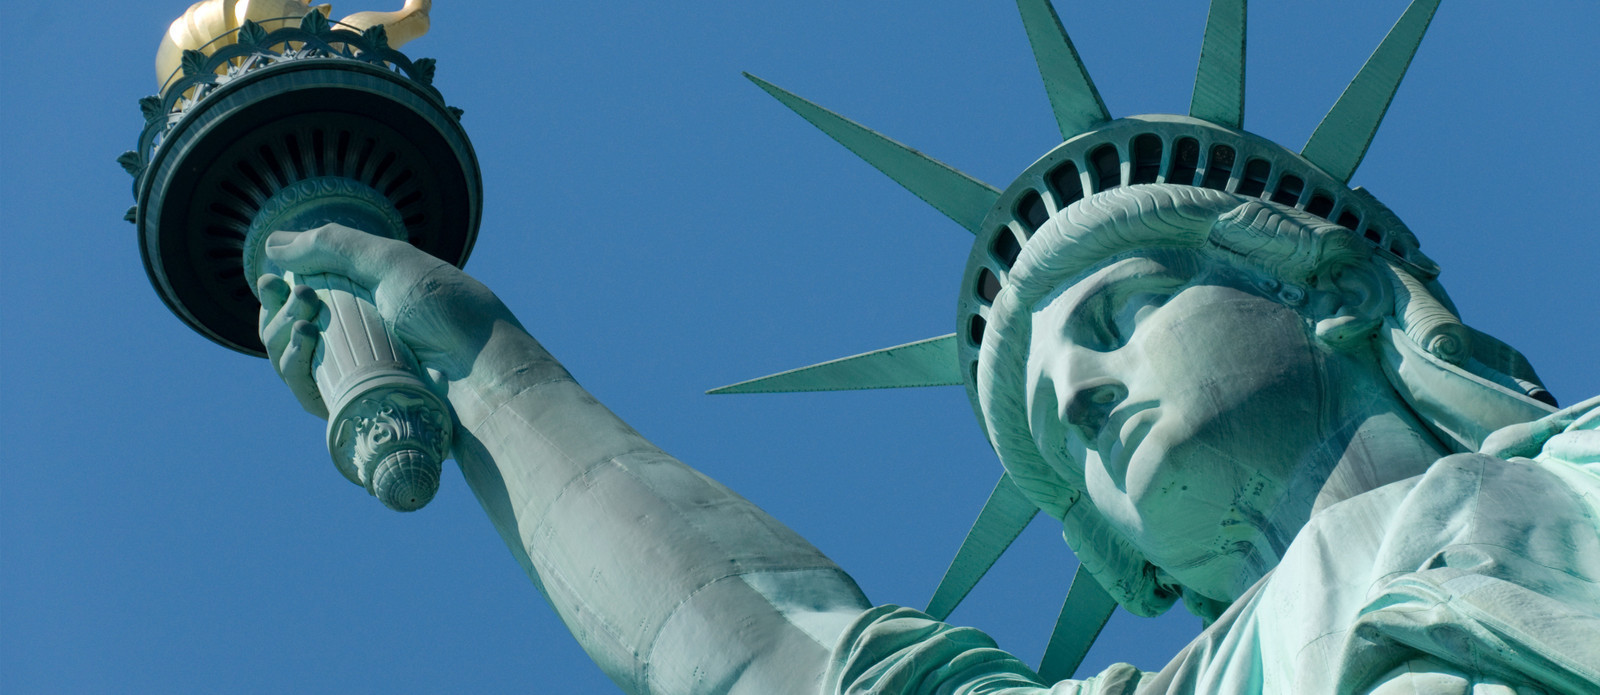 Labor Day Hotel Deals NYC - Statue of Liberty